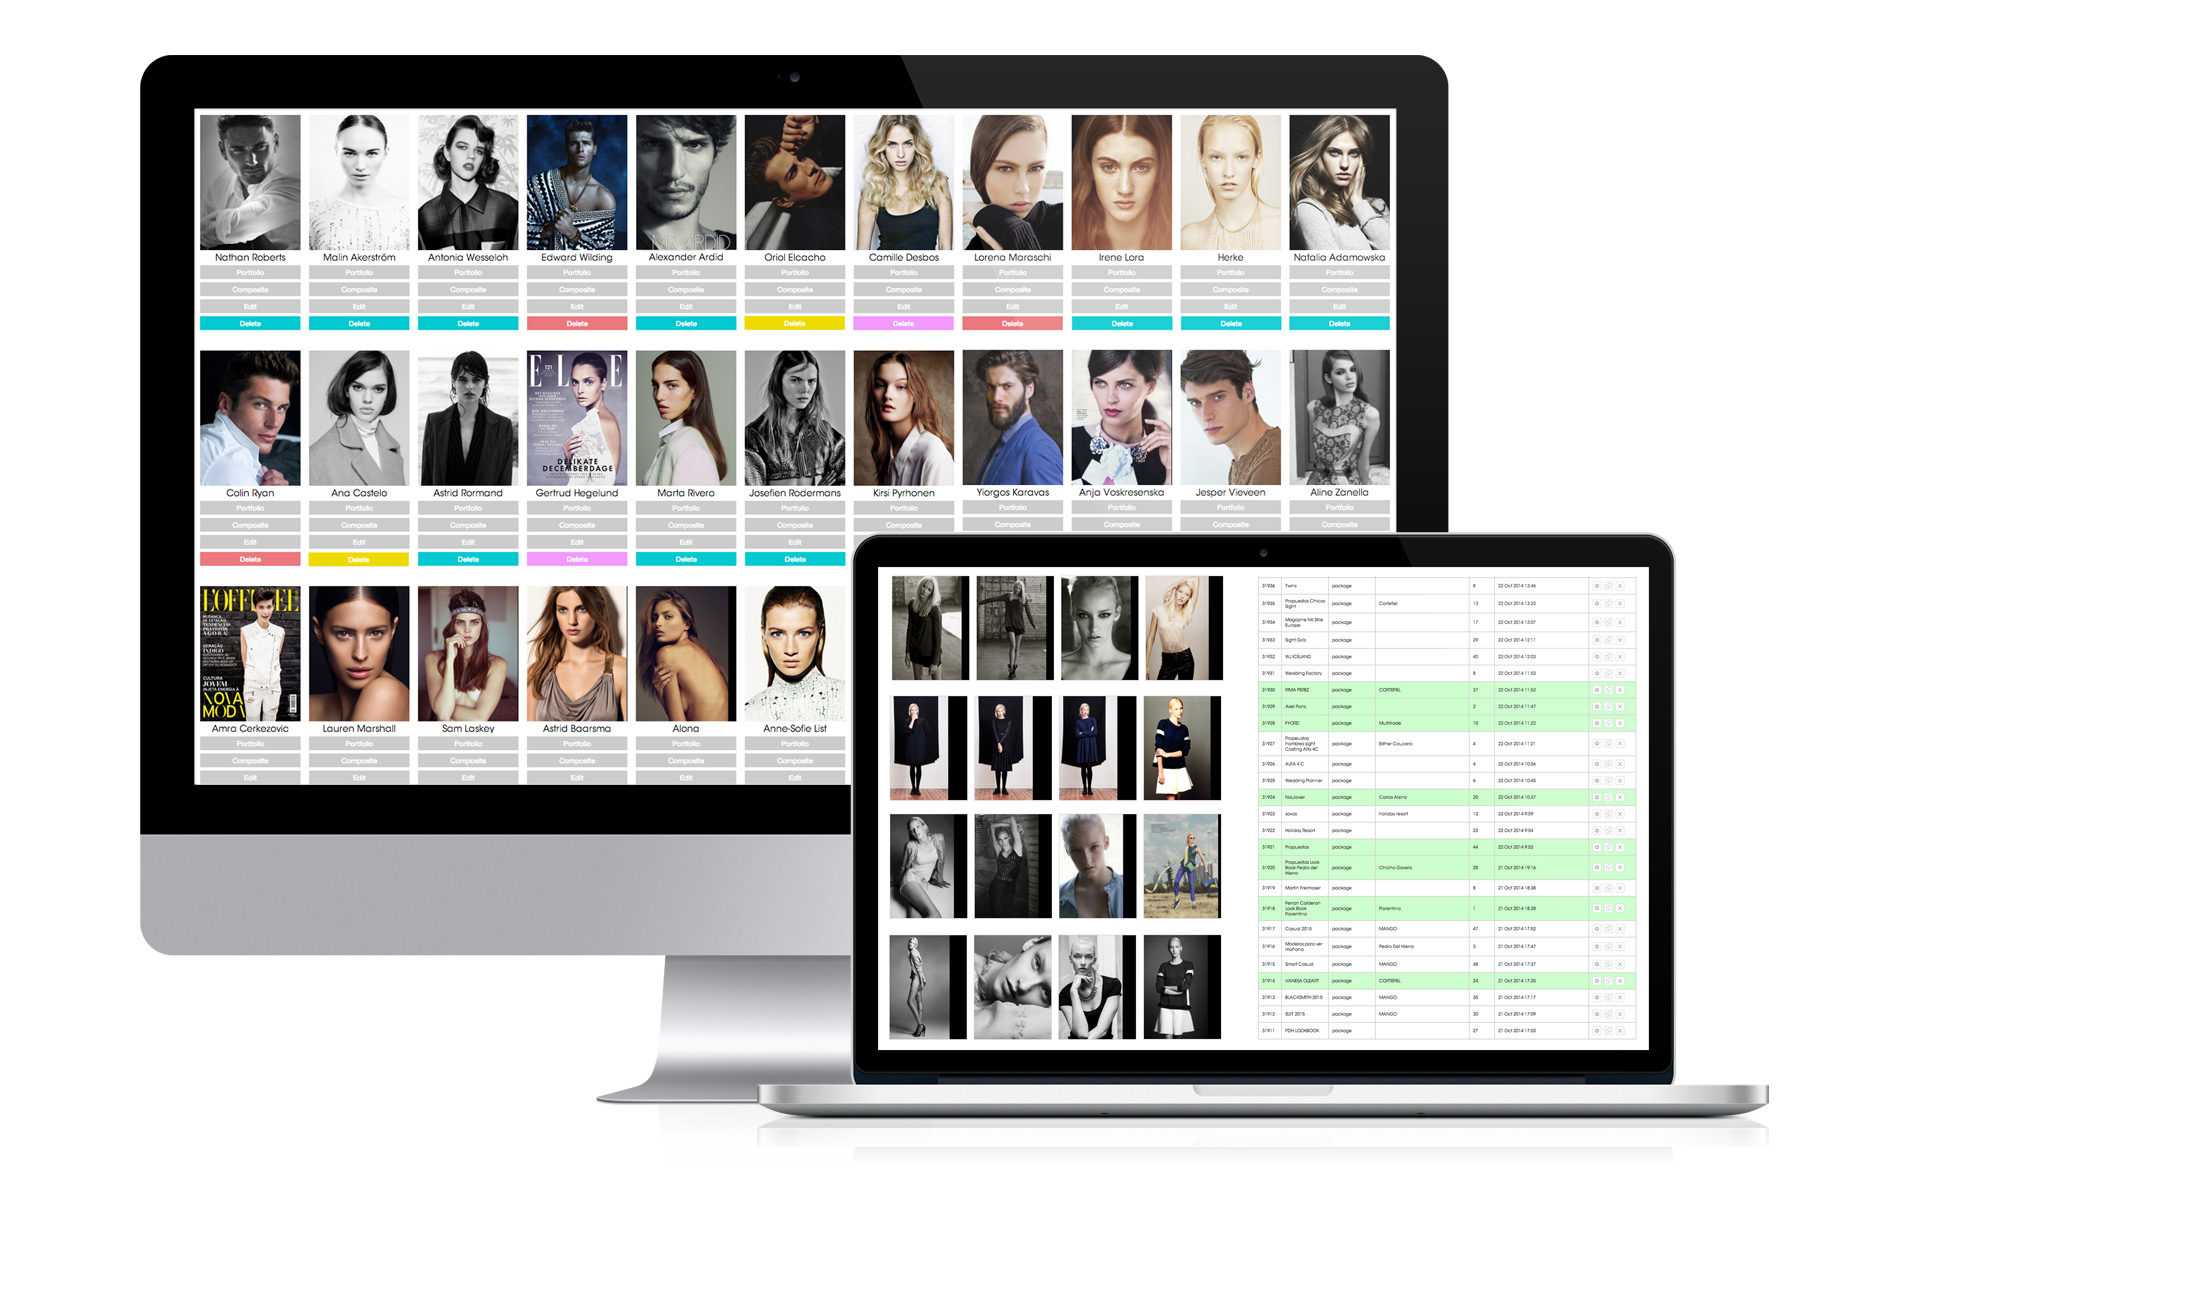 model agency software application